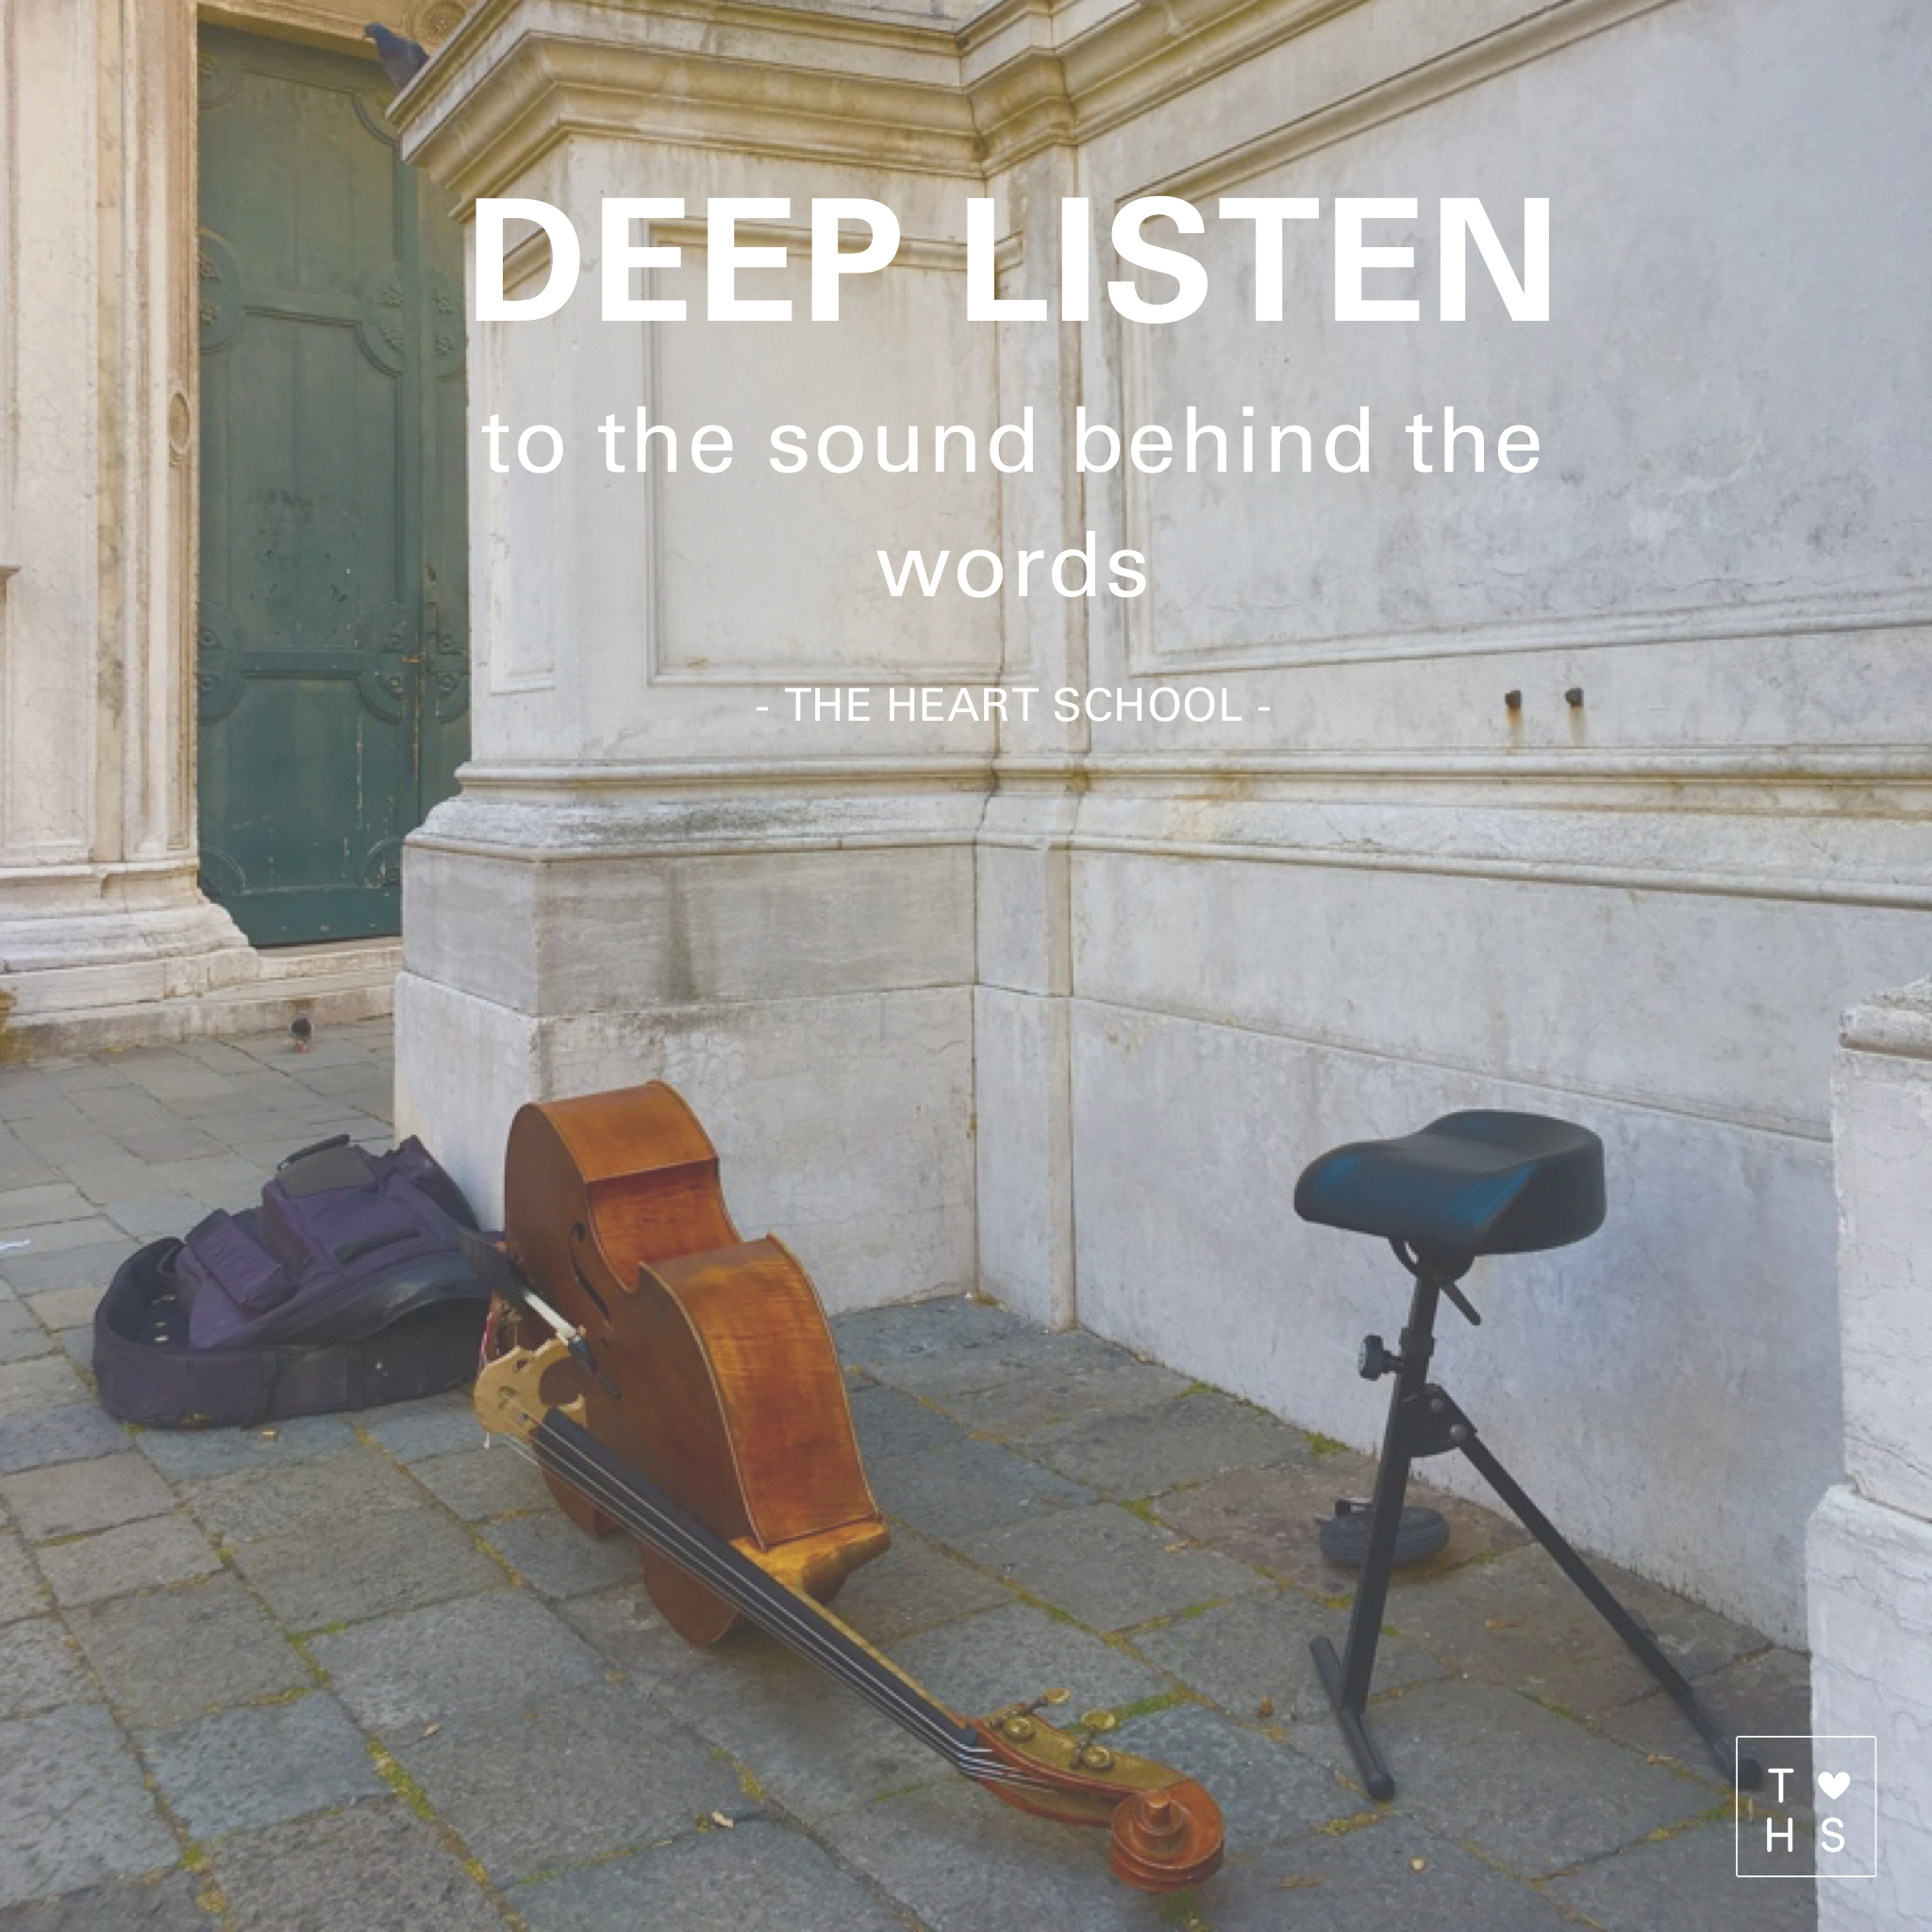 Deep listening is not listening to words, but listening to what is behind the words. Parents tend to 'deep listen' to their infant, they recognise their needs without the infant having to use words. We tend to stop deep listening once a baby starts talking. We stop deep listening because we start listening to the child's words. And we continue this right into adulthood. The clutter of the words can colour our perception. Today, when you are engaging with another person, see if you can 'deep listen' to what they are really saying.